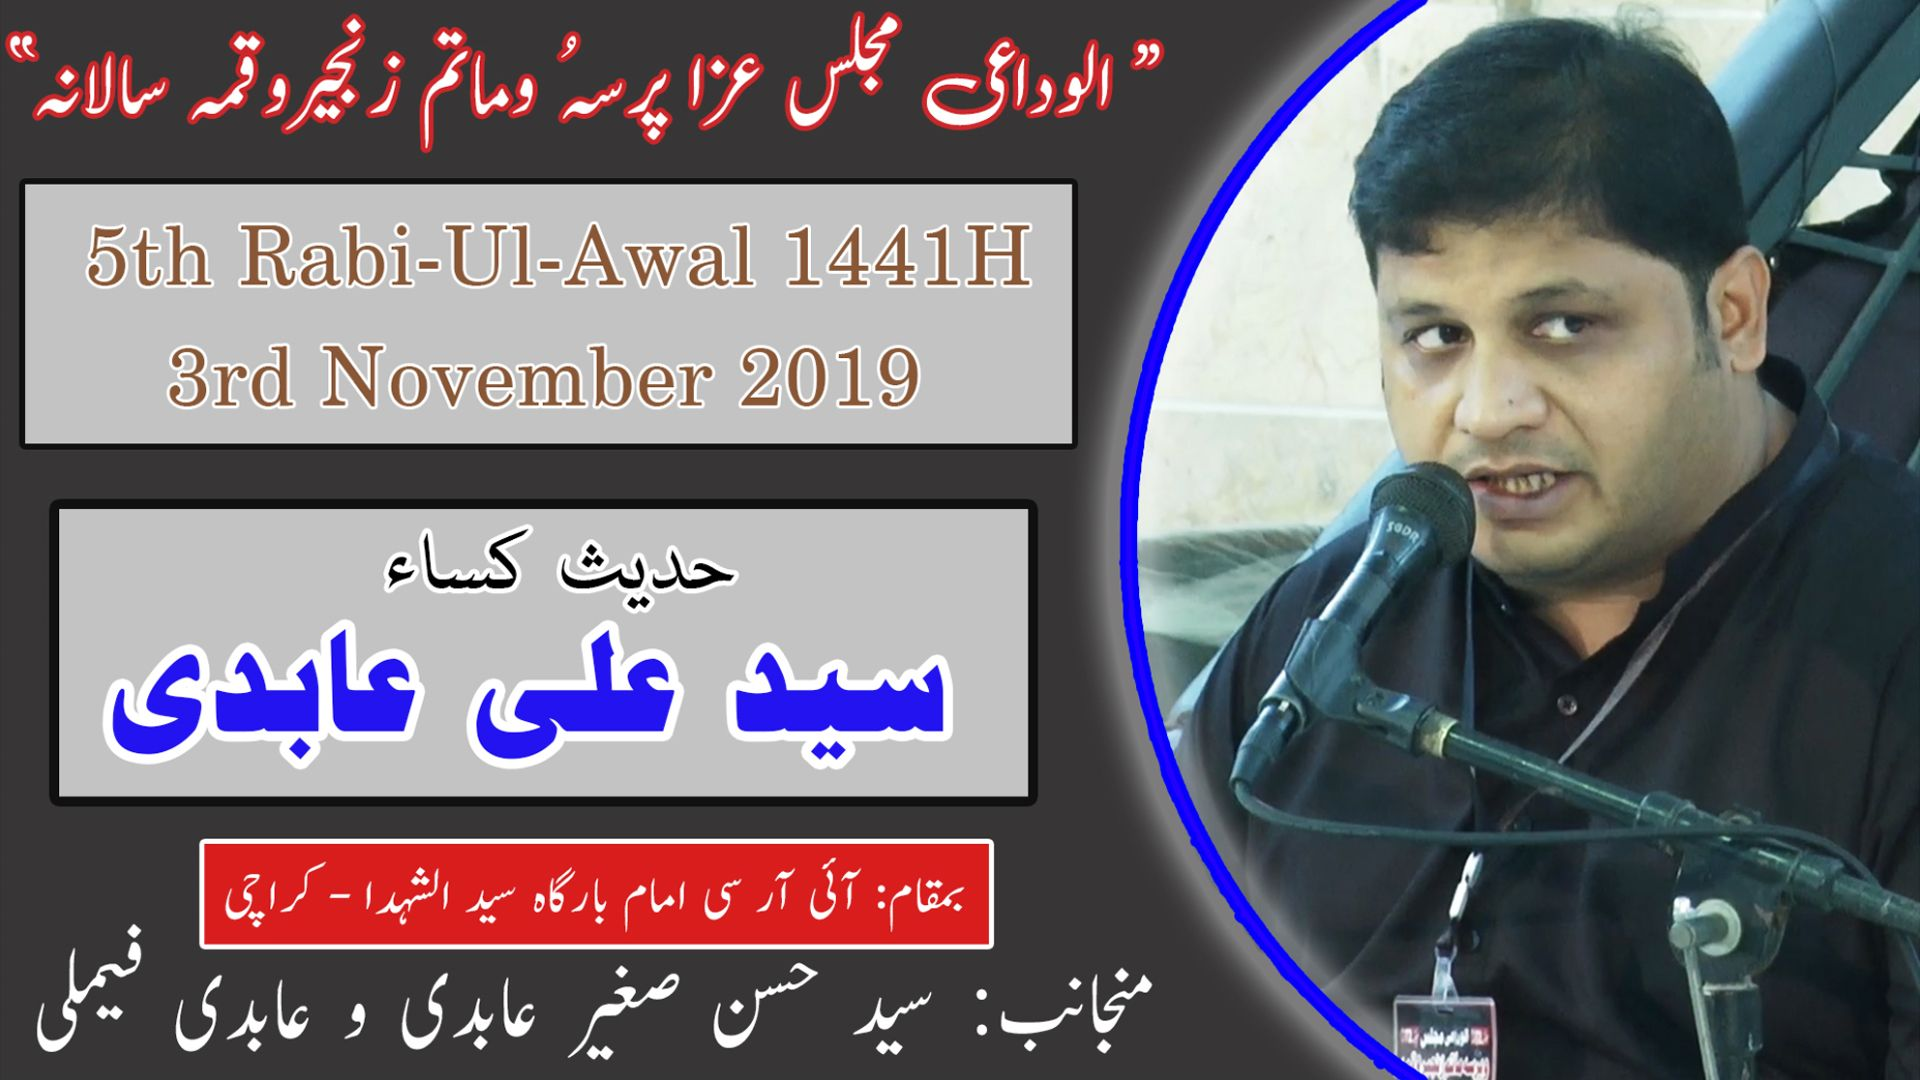 Hadis-e-Kisa | Ali Abidi | 5th Rabi Awal 1441/2019 - Imam Bargah Islamic Research Center - Karachi